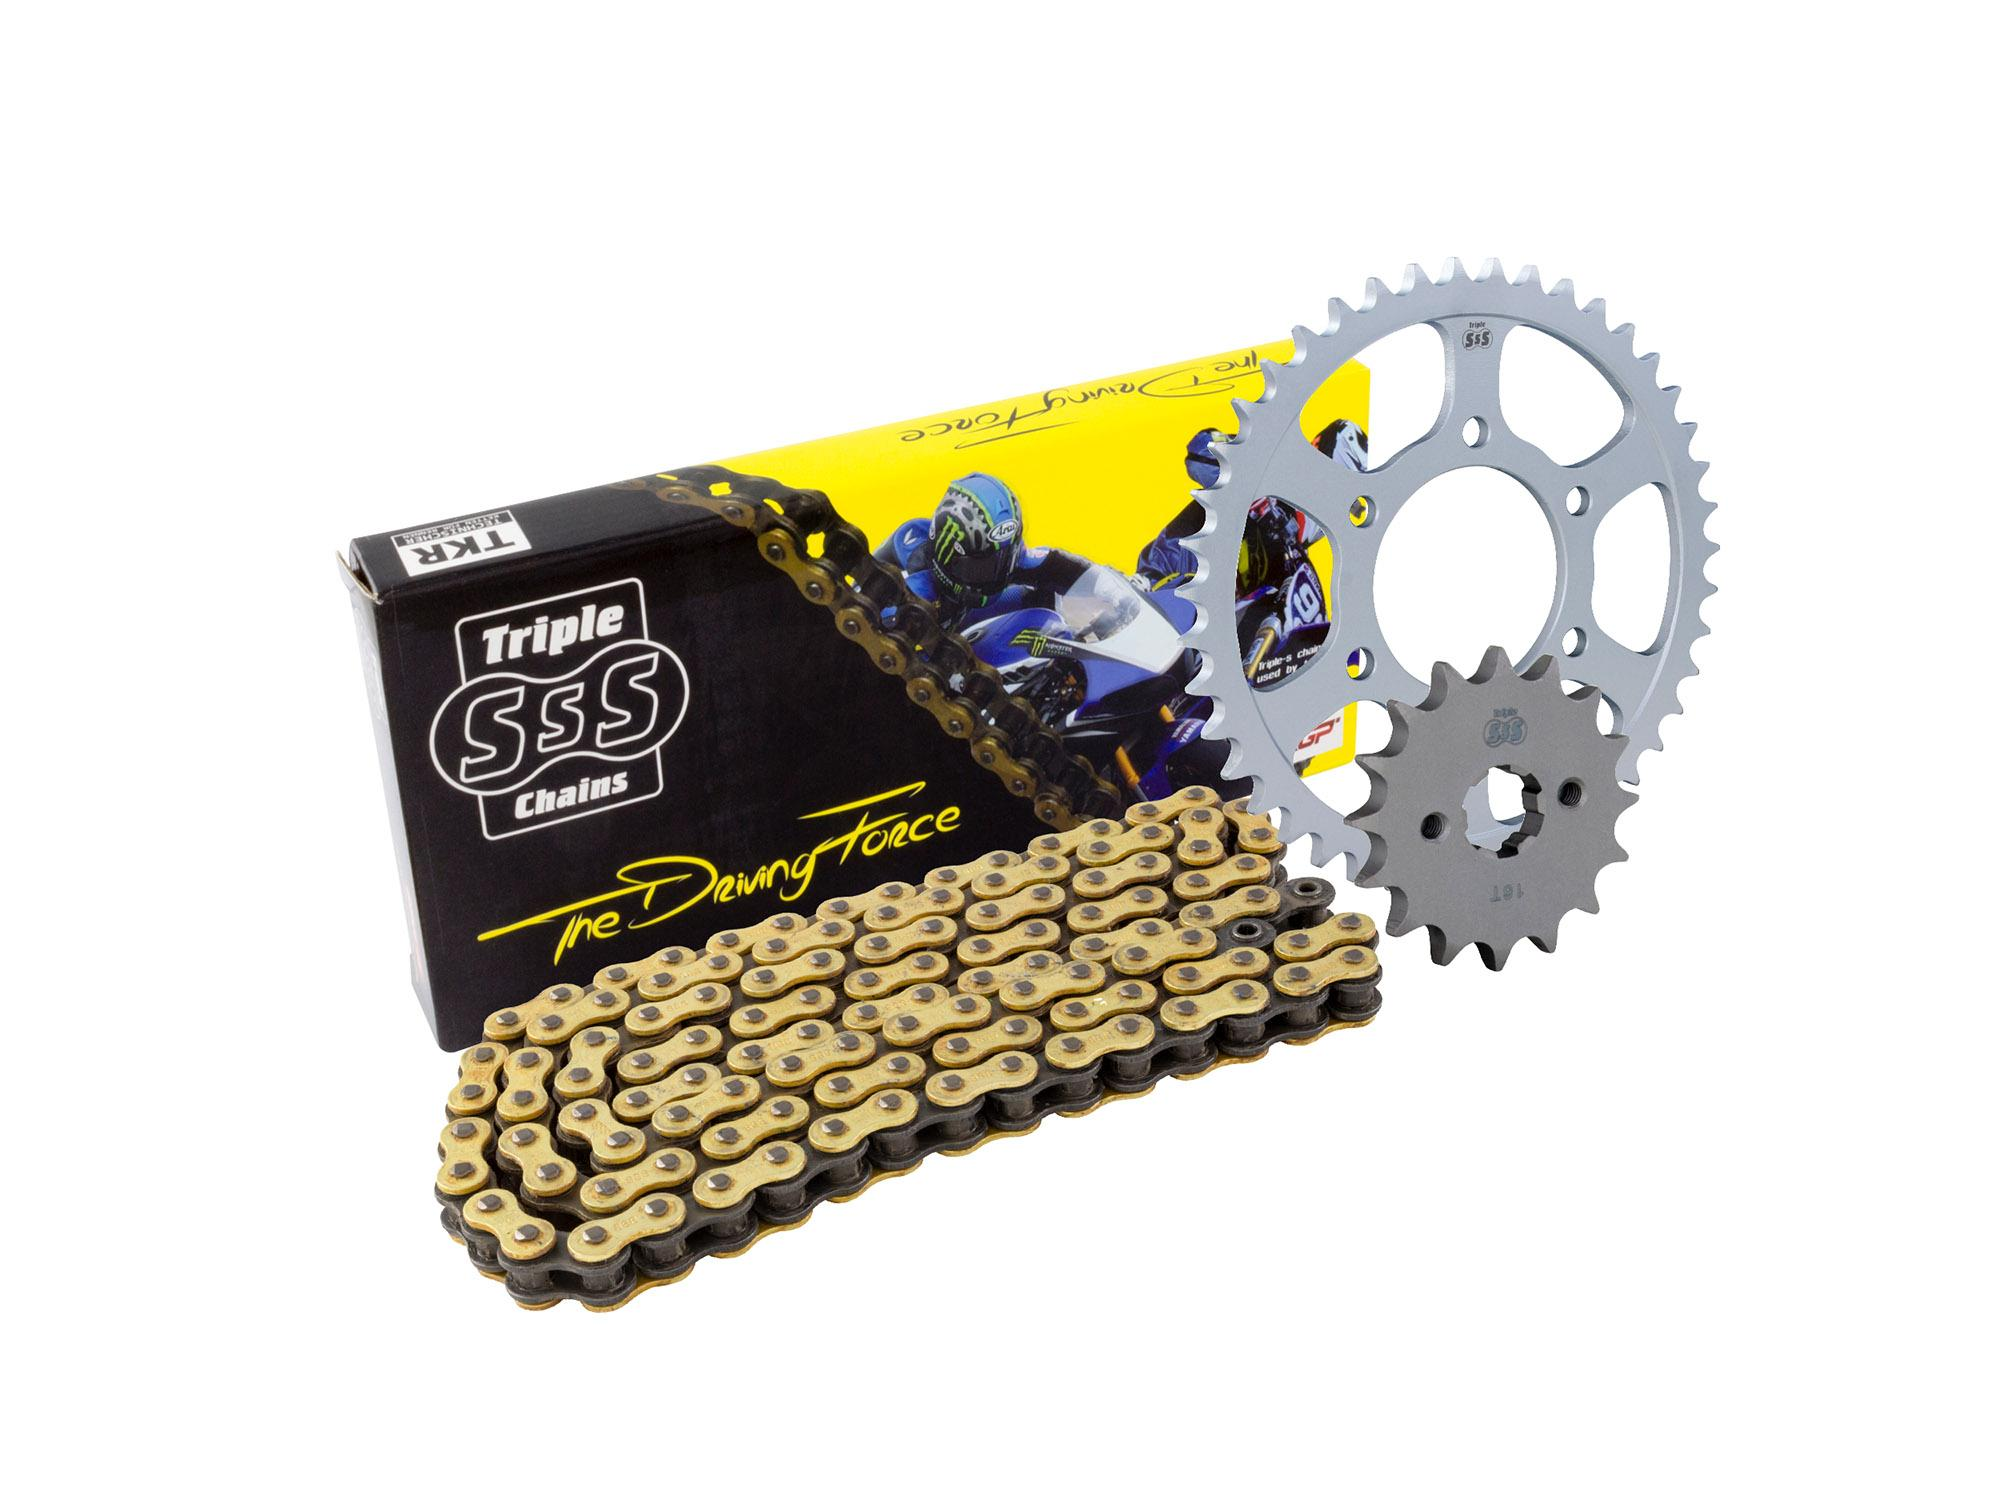 Suzuki GSX650 F K8-L0 08-10 Chain & Sprocket Kit: 15T Front, 48T Rear, HD O-Ring Gold Chain 525H 118 Link